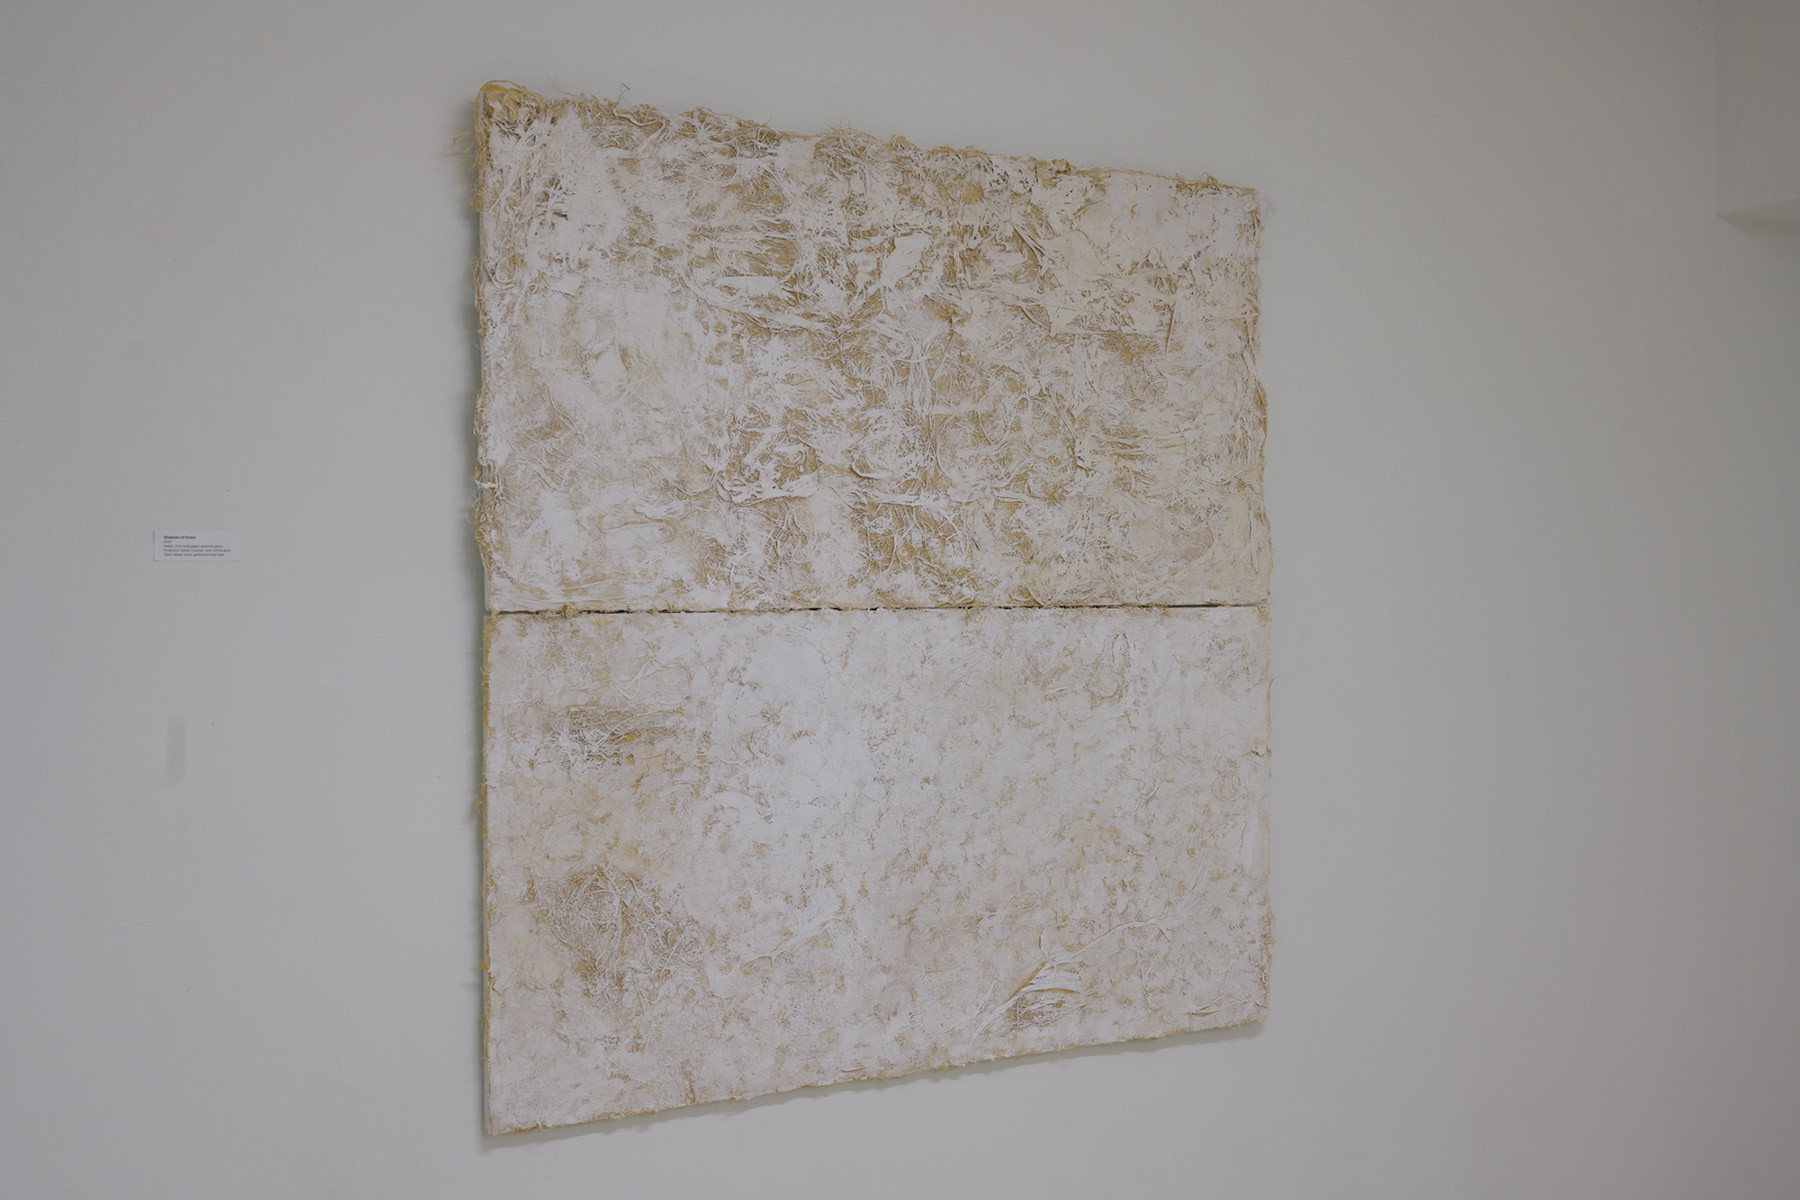 Corn husk paper with gesso on plywood board